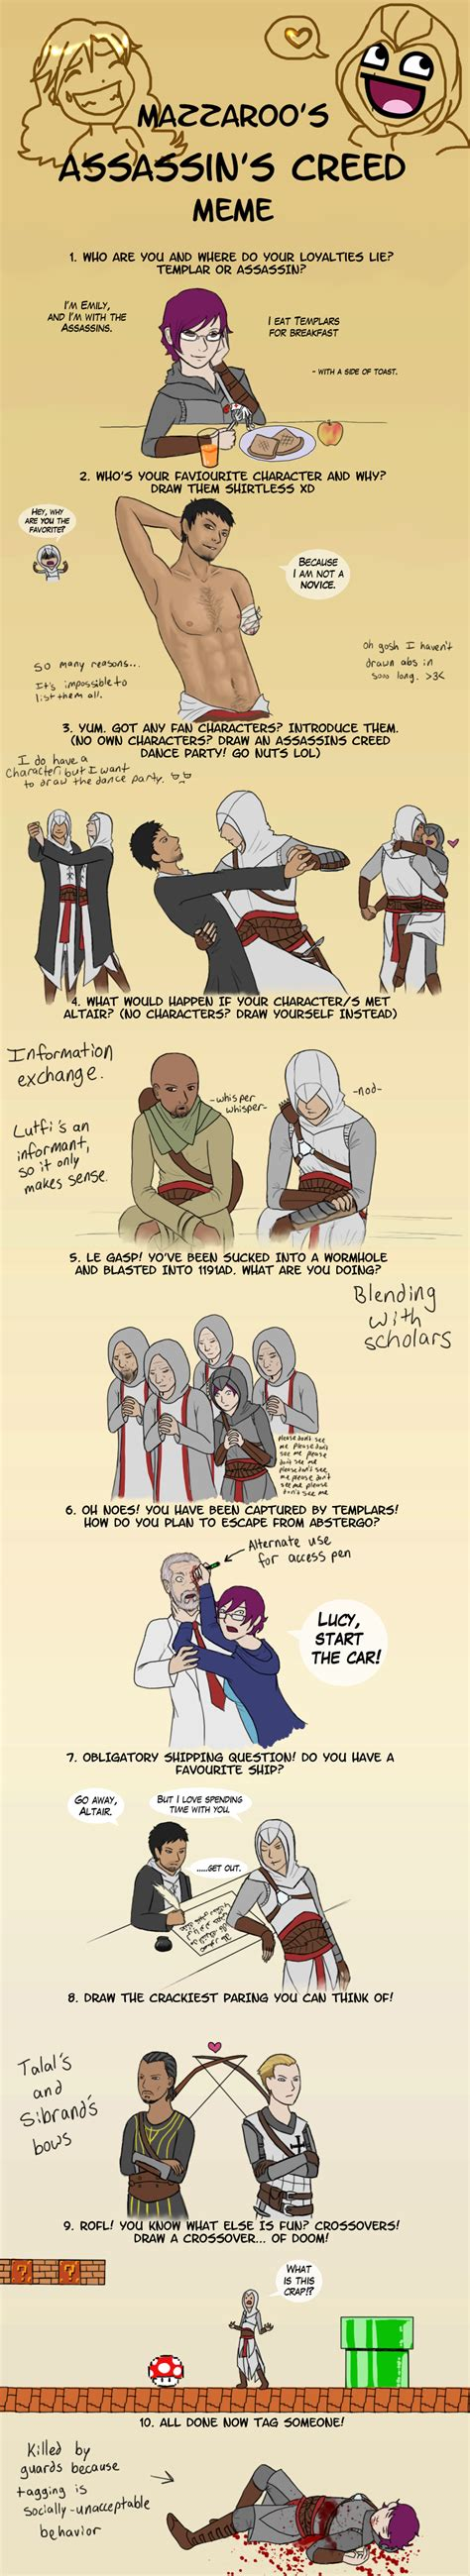 Assasins Creed Memes - assassin s creed meme by arithusa on deviantart